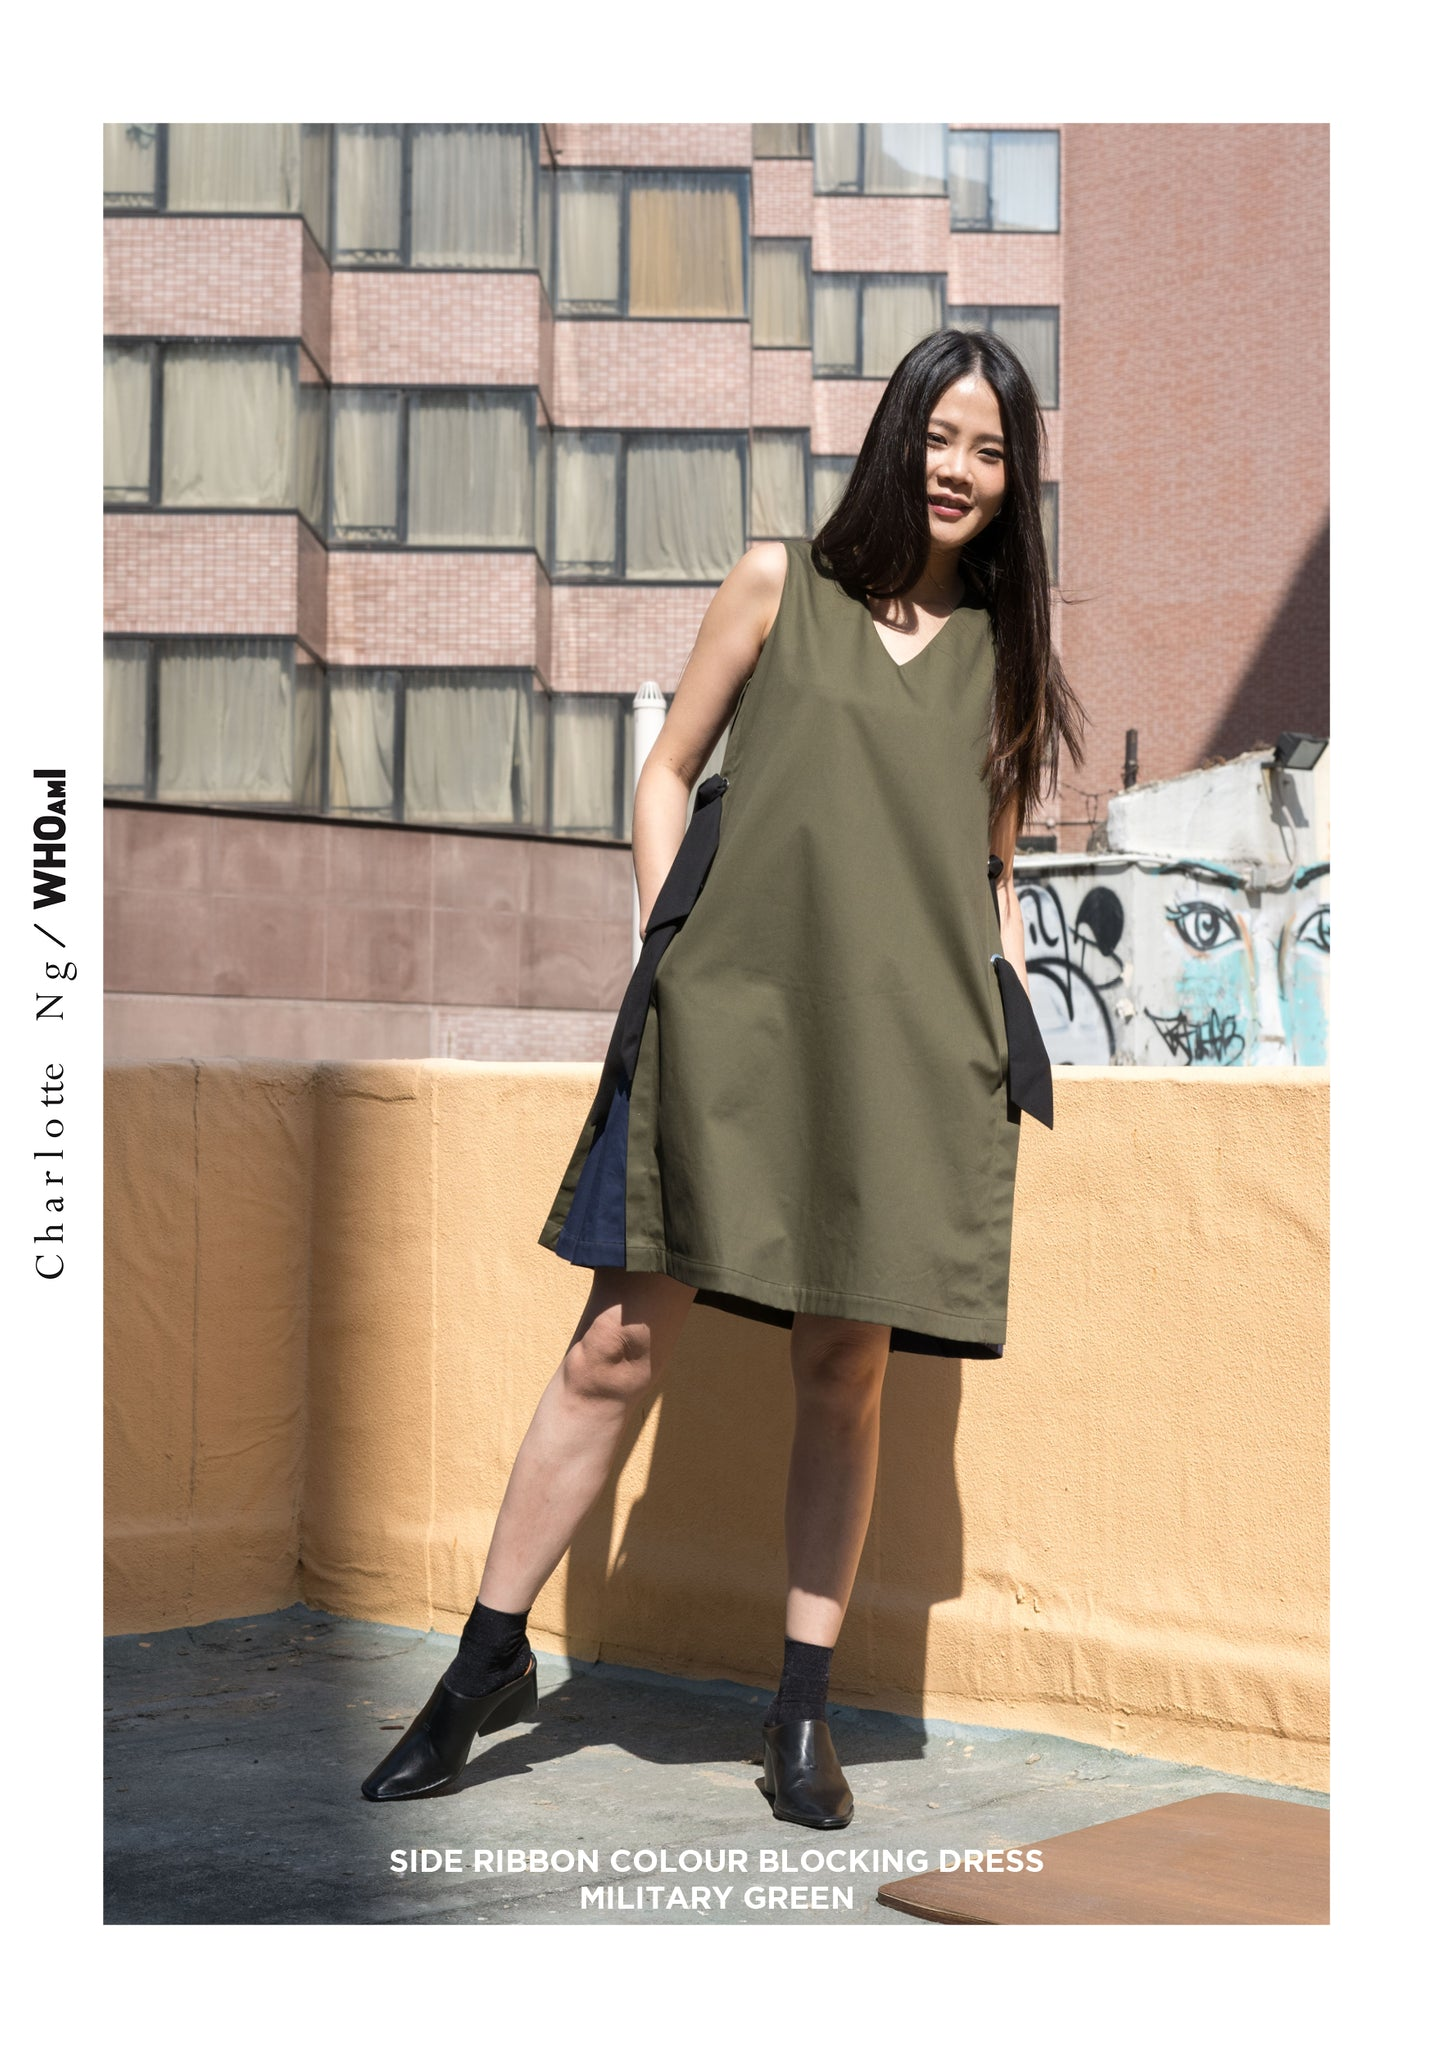 Side Ribbon Colour Blocking Dress Military Green - whoami